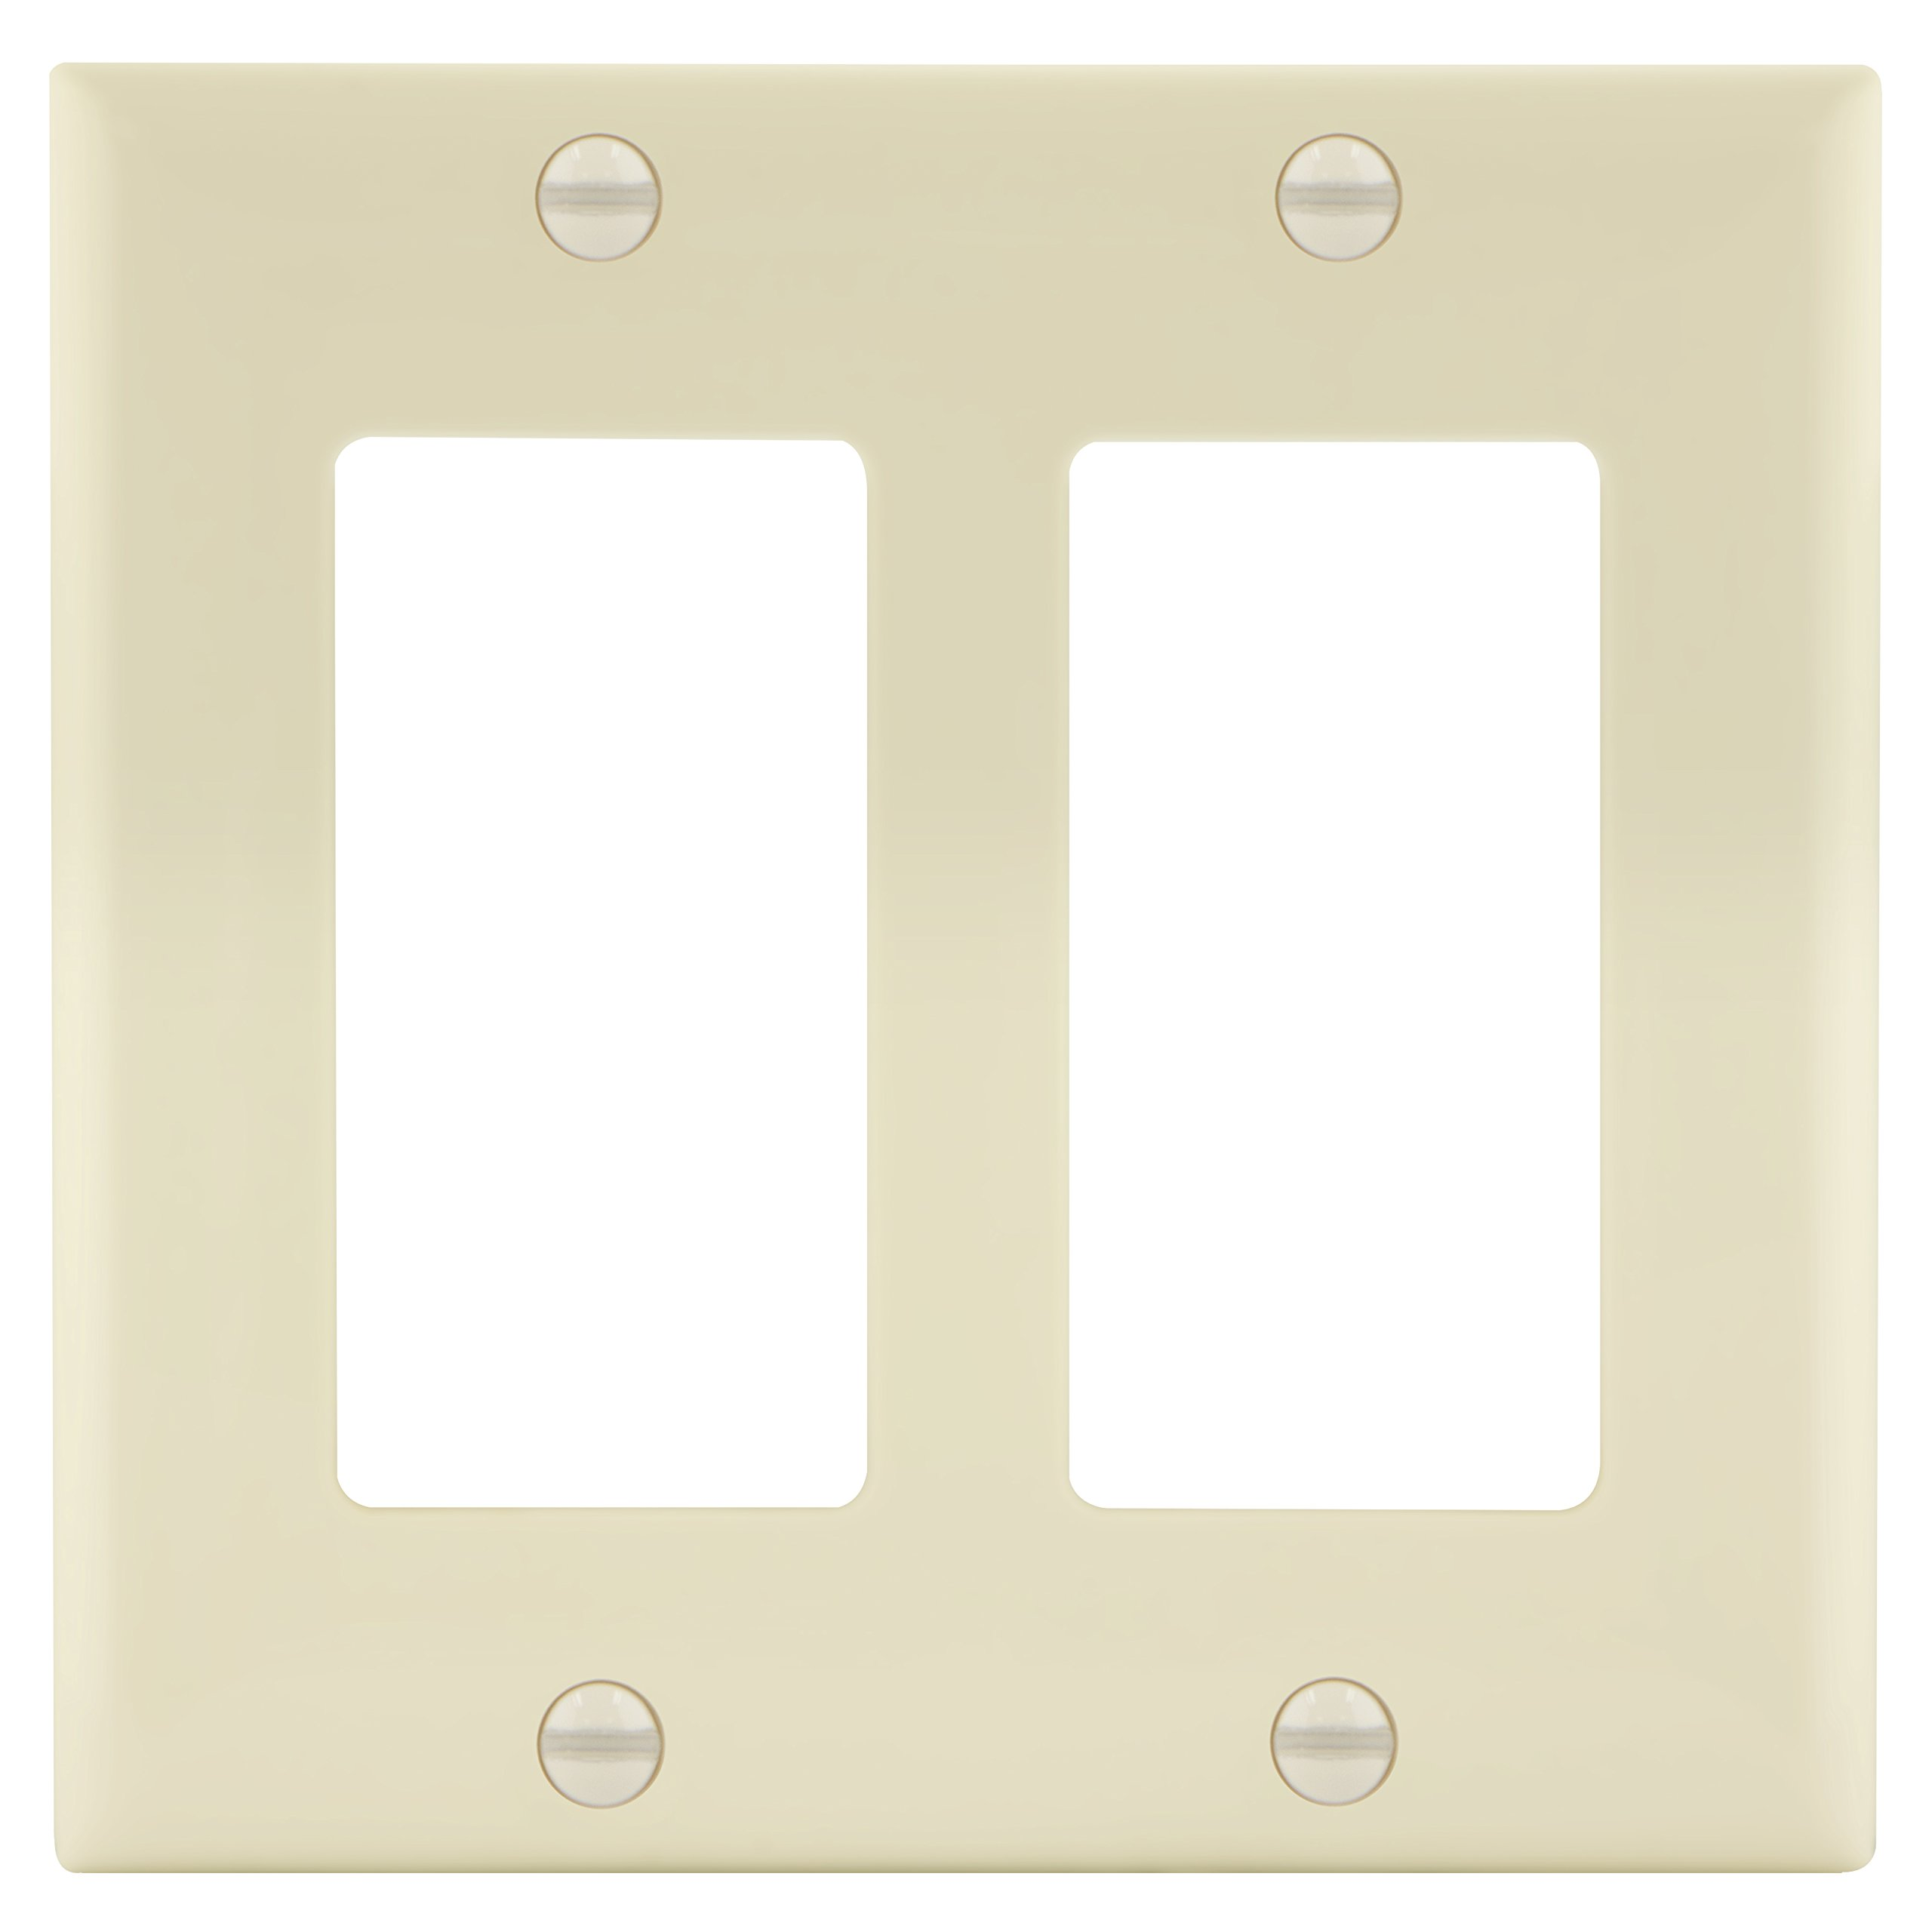 Enerlites 8832-LA Decorator Light Switch/Receptacle Outlet Wall Plate, Standard Size 2-Gang, Polycarbonate Thermoplastic, Light Almond